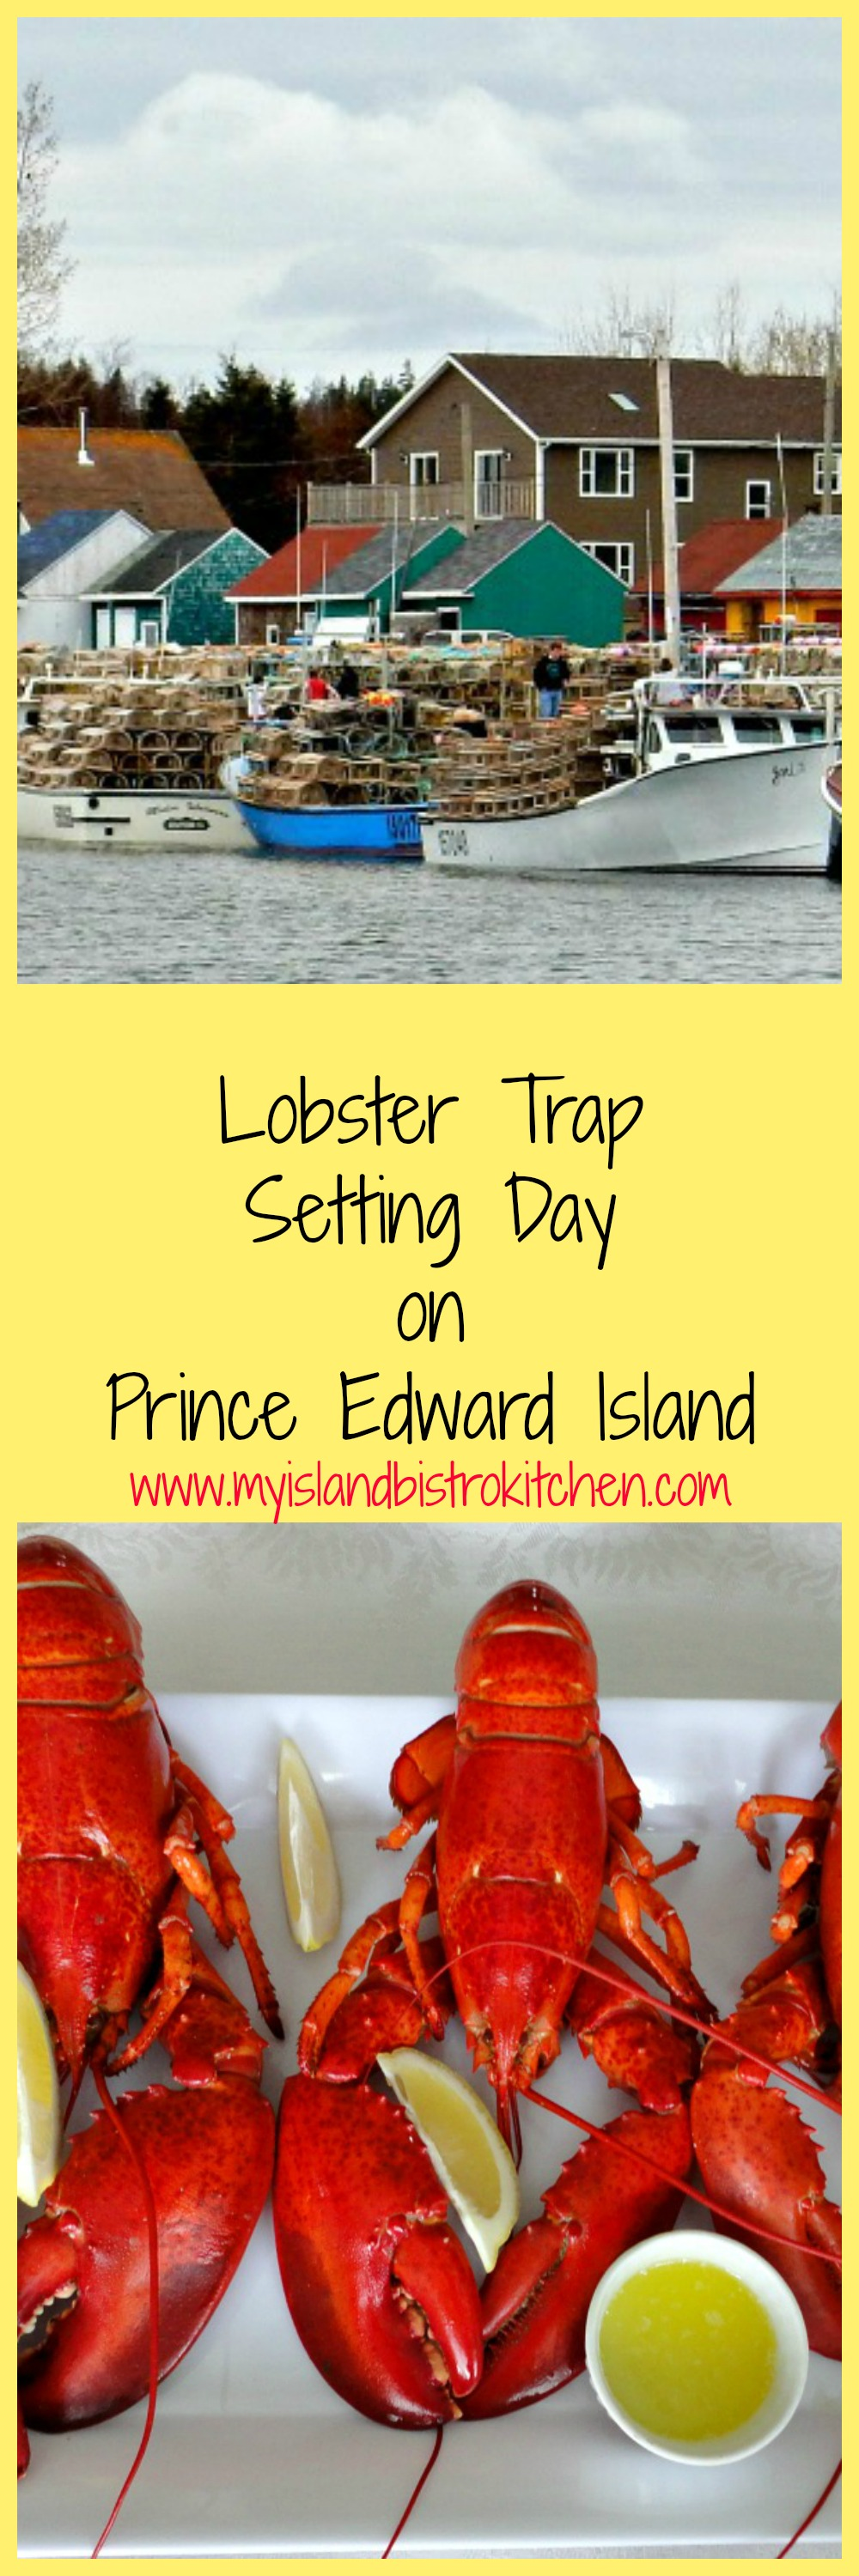 Setting Day marks the beginning of the PEI lobster fishing season as fishers set their lobster traps in the water